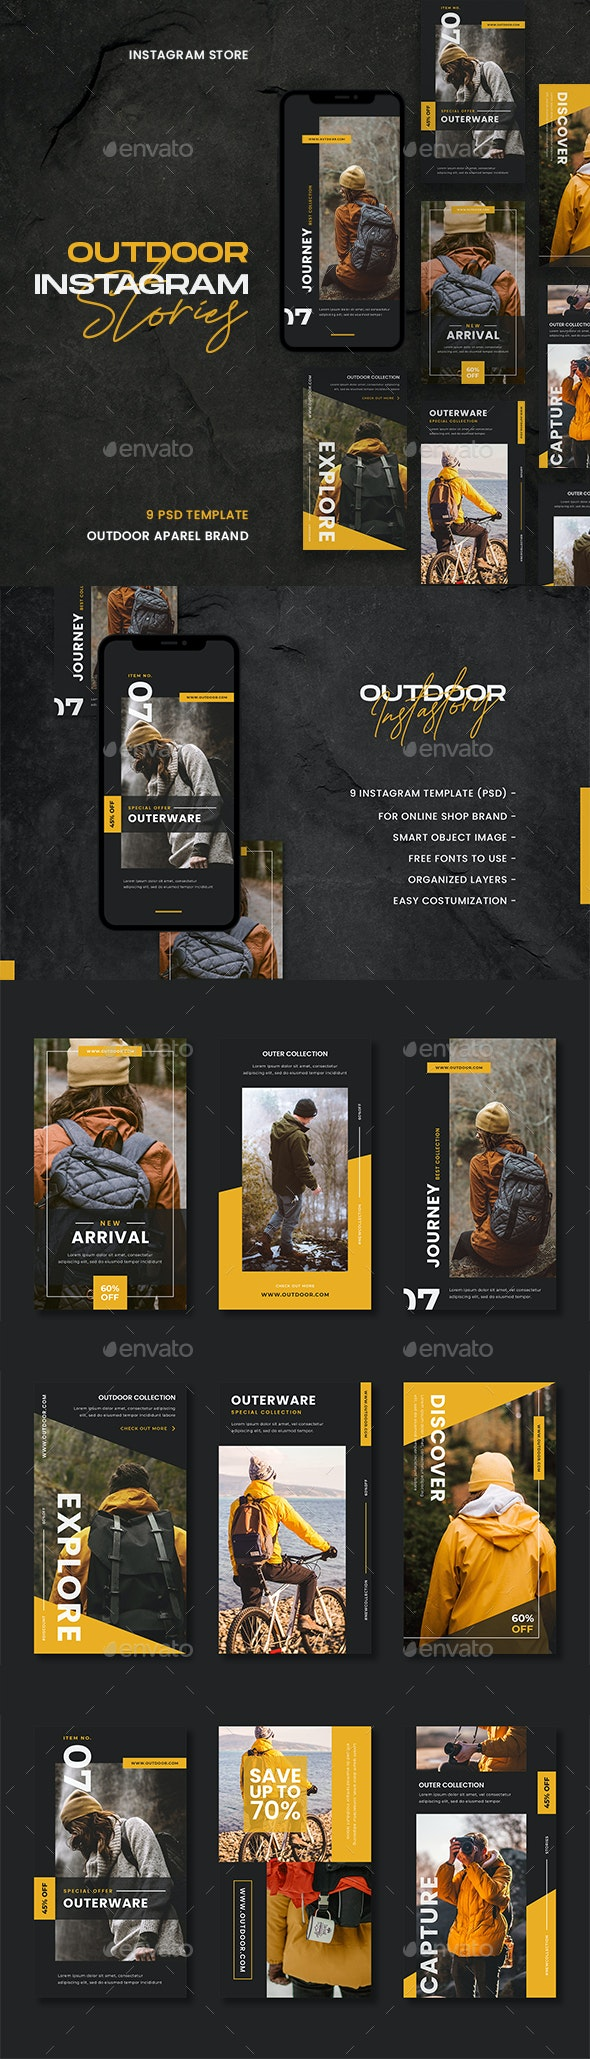 Outdoor Instagram Template - Social Media Web Elements